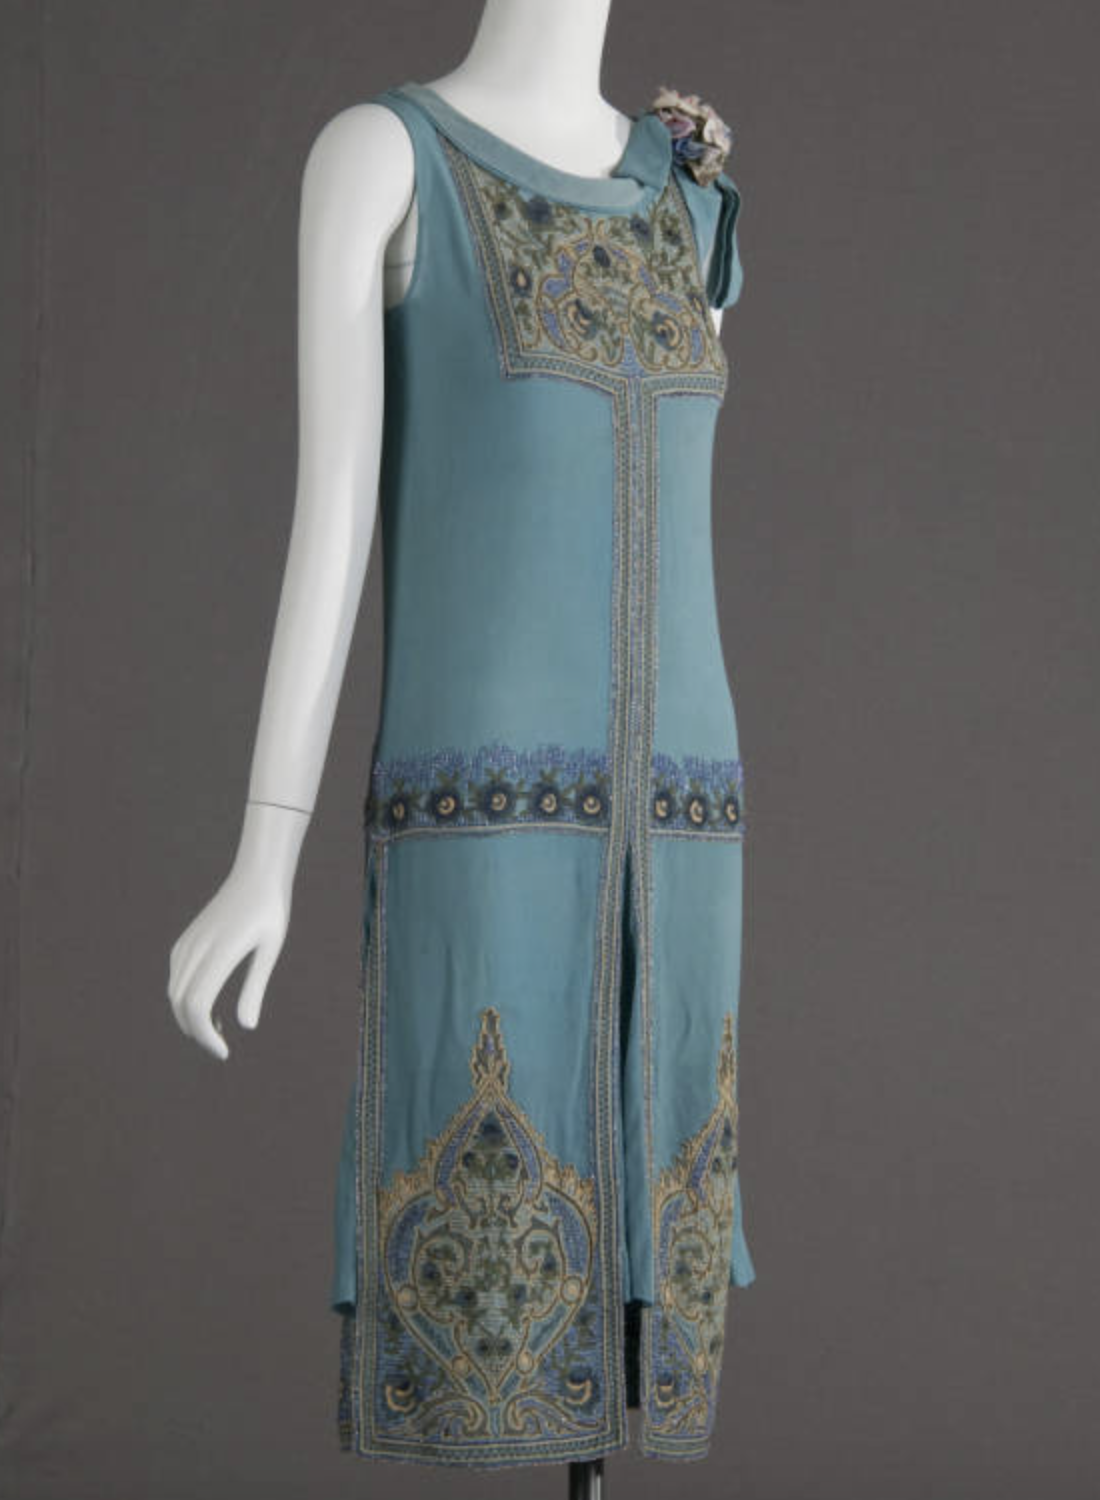 Wedding dress, 1927. Silk crepe, glass beads, metallic thread embroidery. Maker unknown. Gift of Robert C. Woolard. 1991.408a, Sponsored by Laura Barnett Sawchyn, Chicago Historical Society